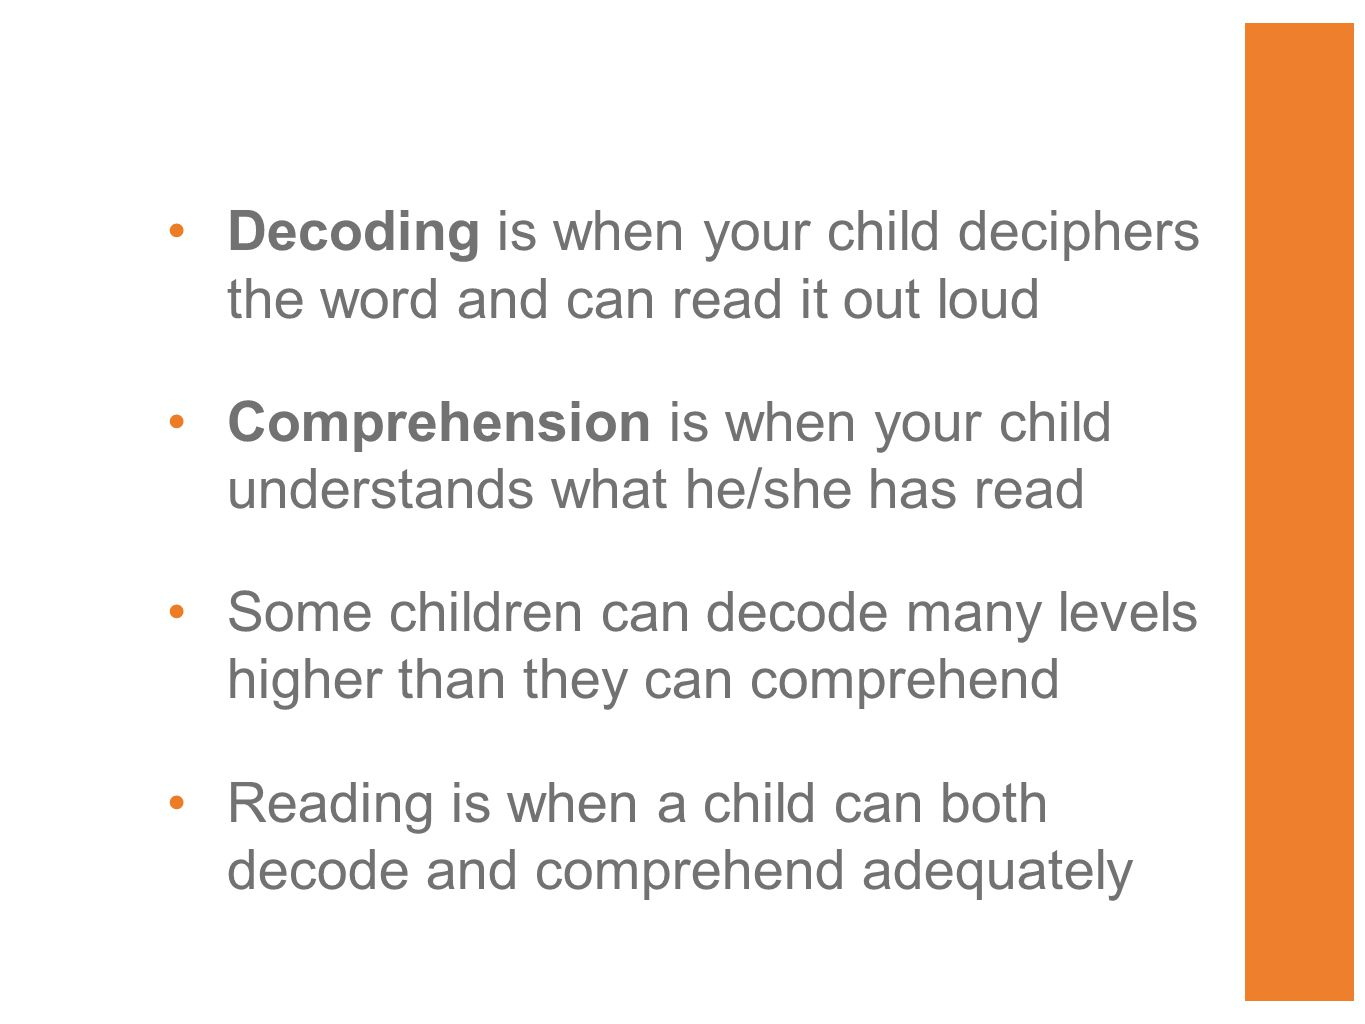 Decoding is when your child deciphers the word and can read it out loud Comprehension is when your child understands what he/she has read Some children can decode many levels higher than they can comprehend Reading is when a child can both decode and comprehend adequately